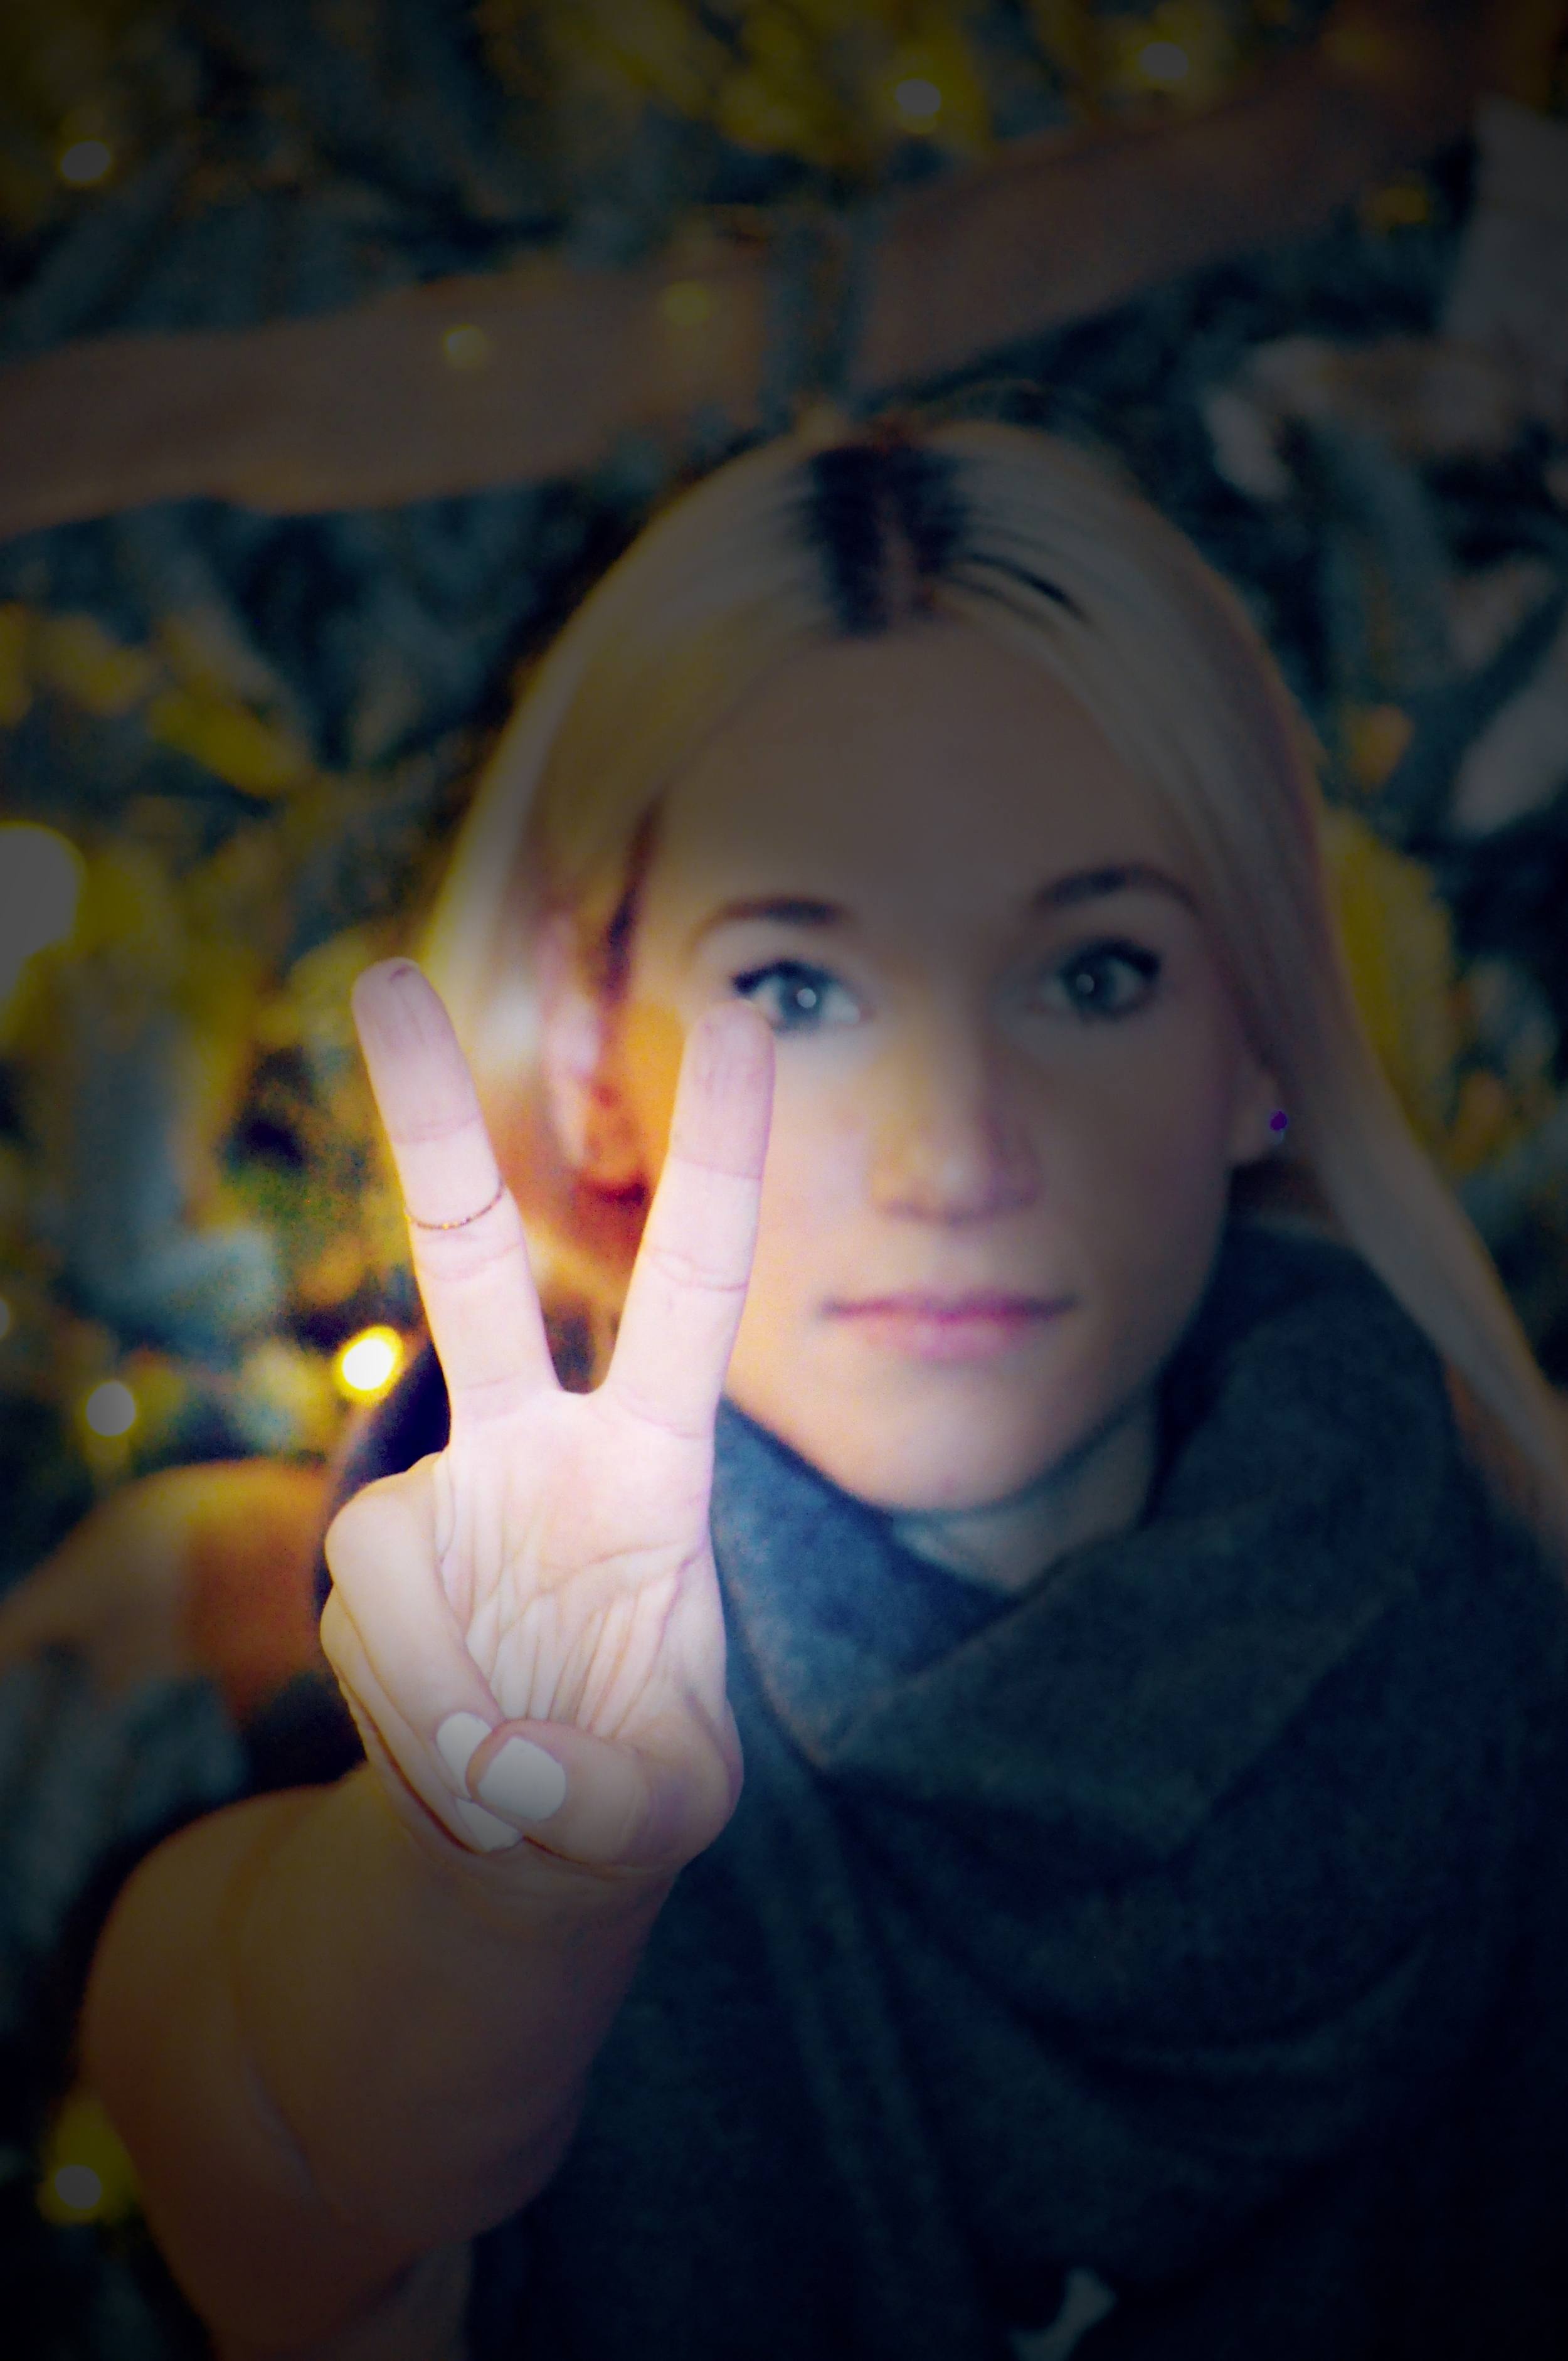 peace sign revised pic.jpg